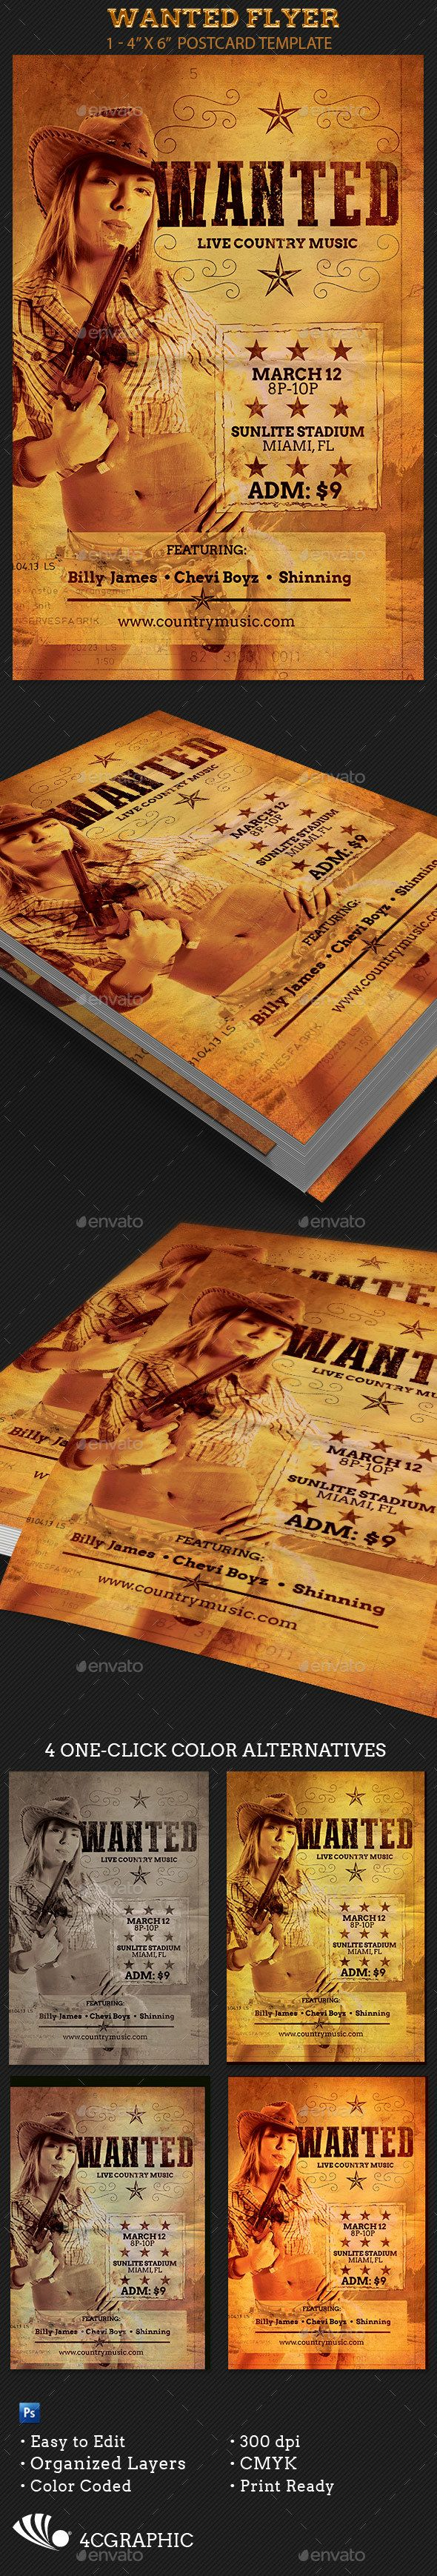 wanted flyer template